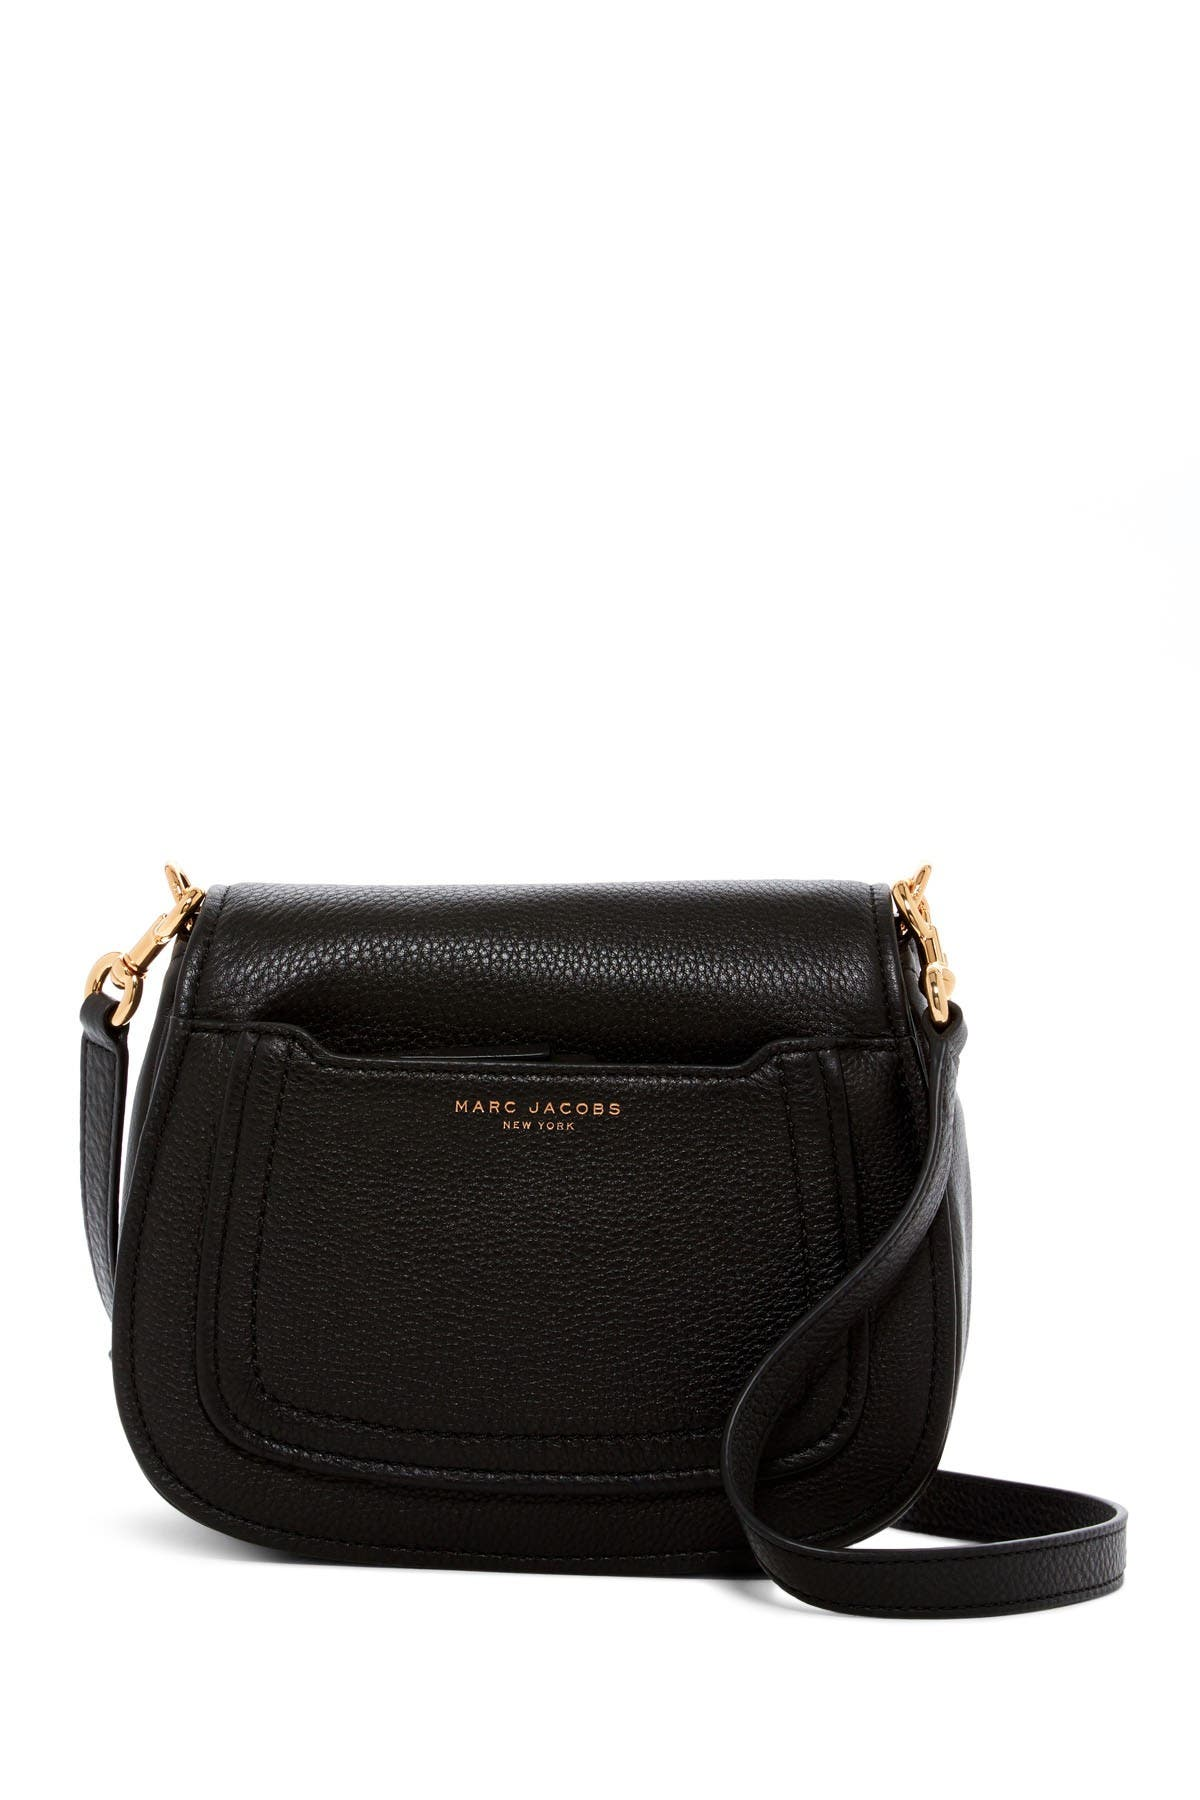 Image of Marc Jacobs Empire City Mini Messenger Leather Crossbody Bag